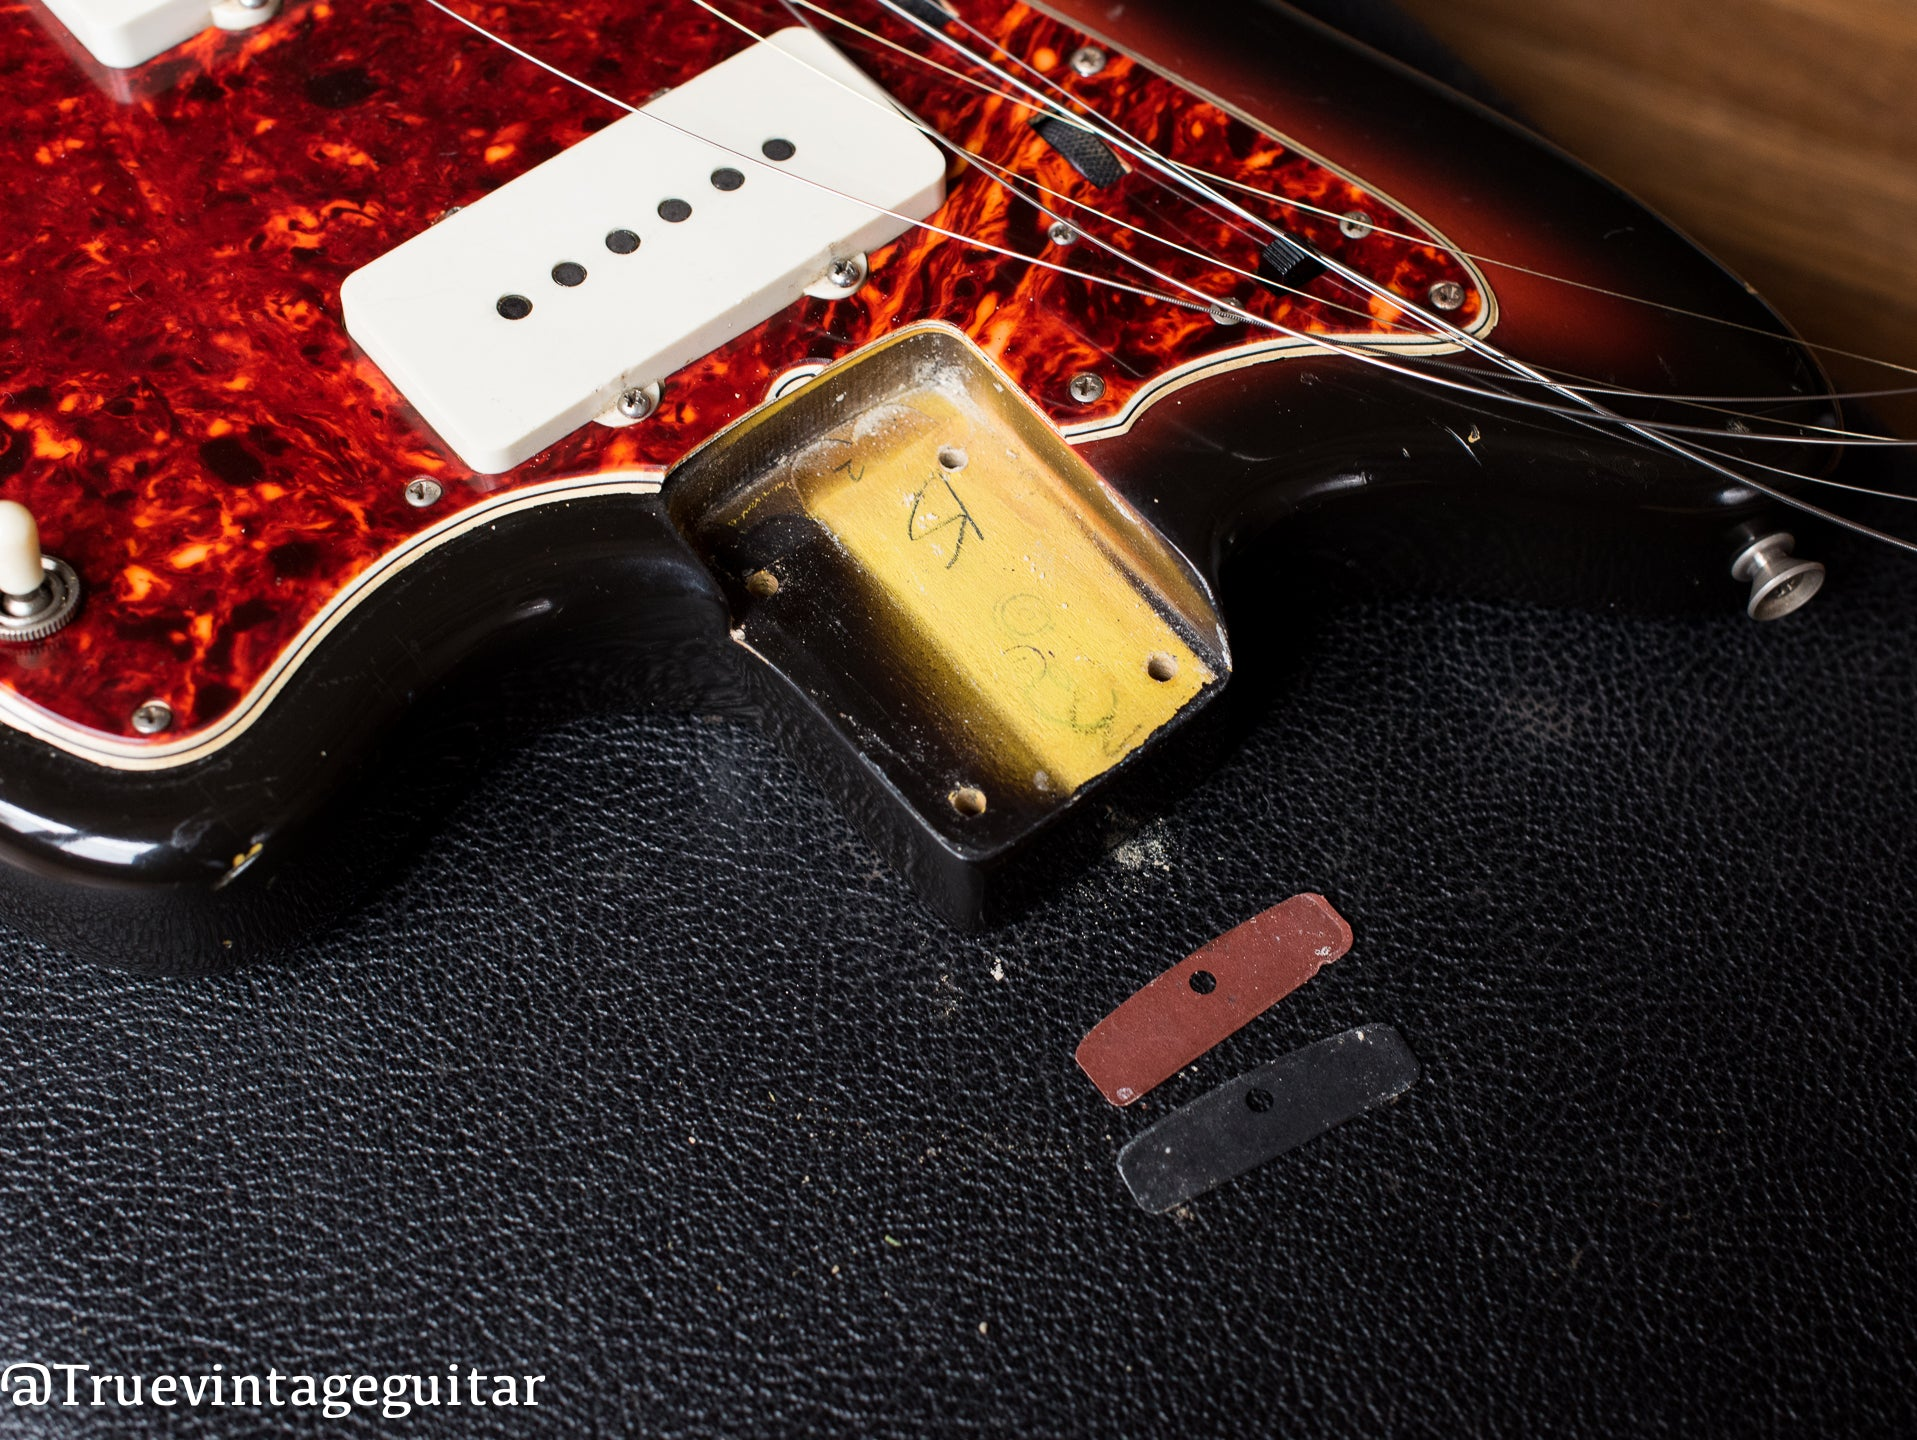 Vintage 1966 Fender Jazzmaster neck pocket original finish